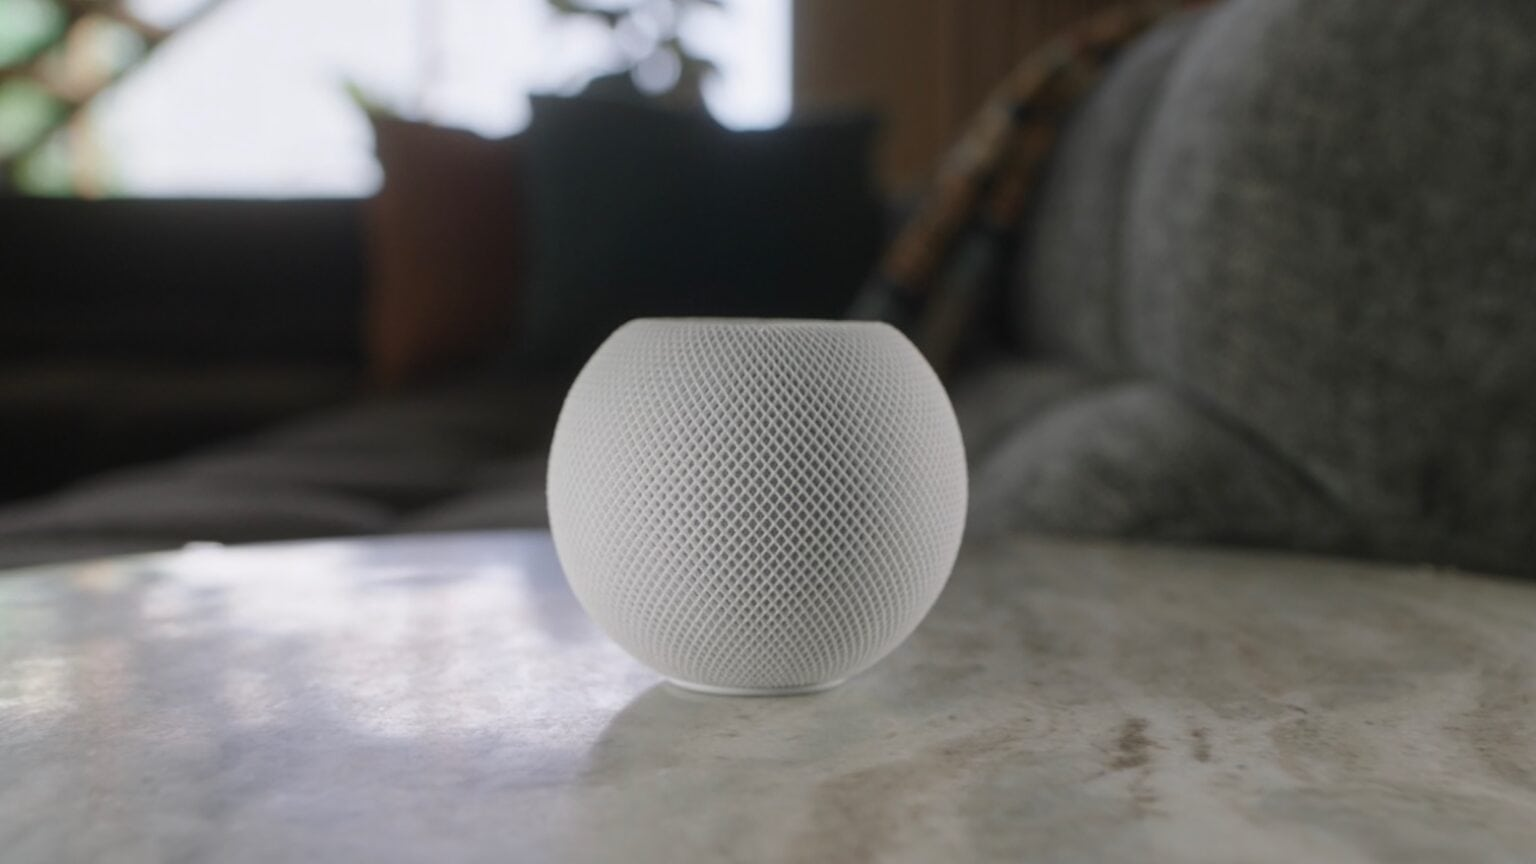 HomePod mini lives up to its name